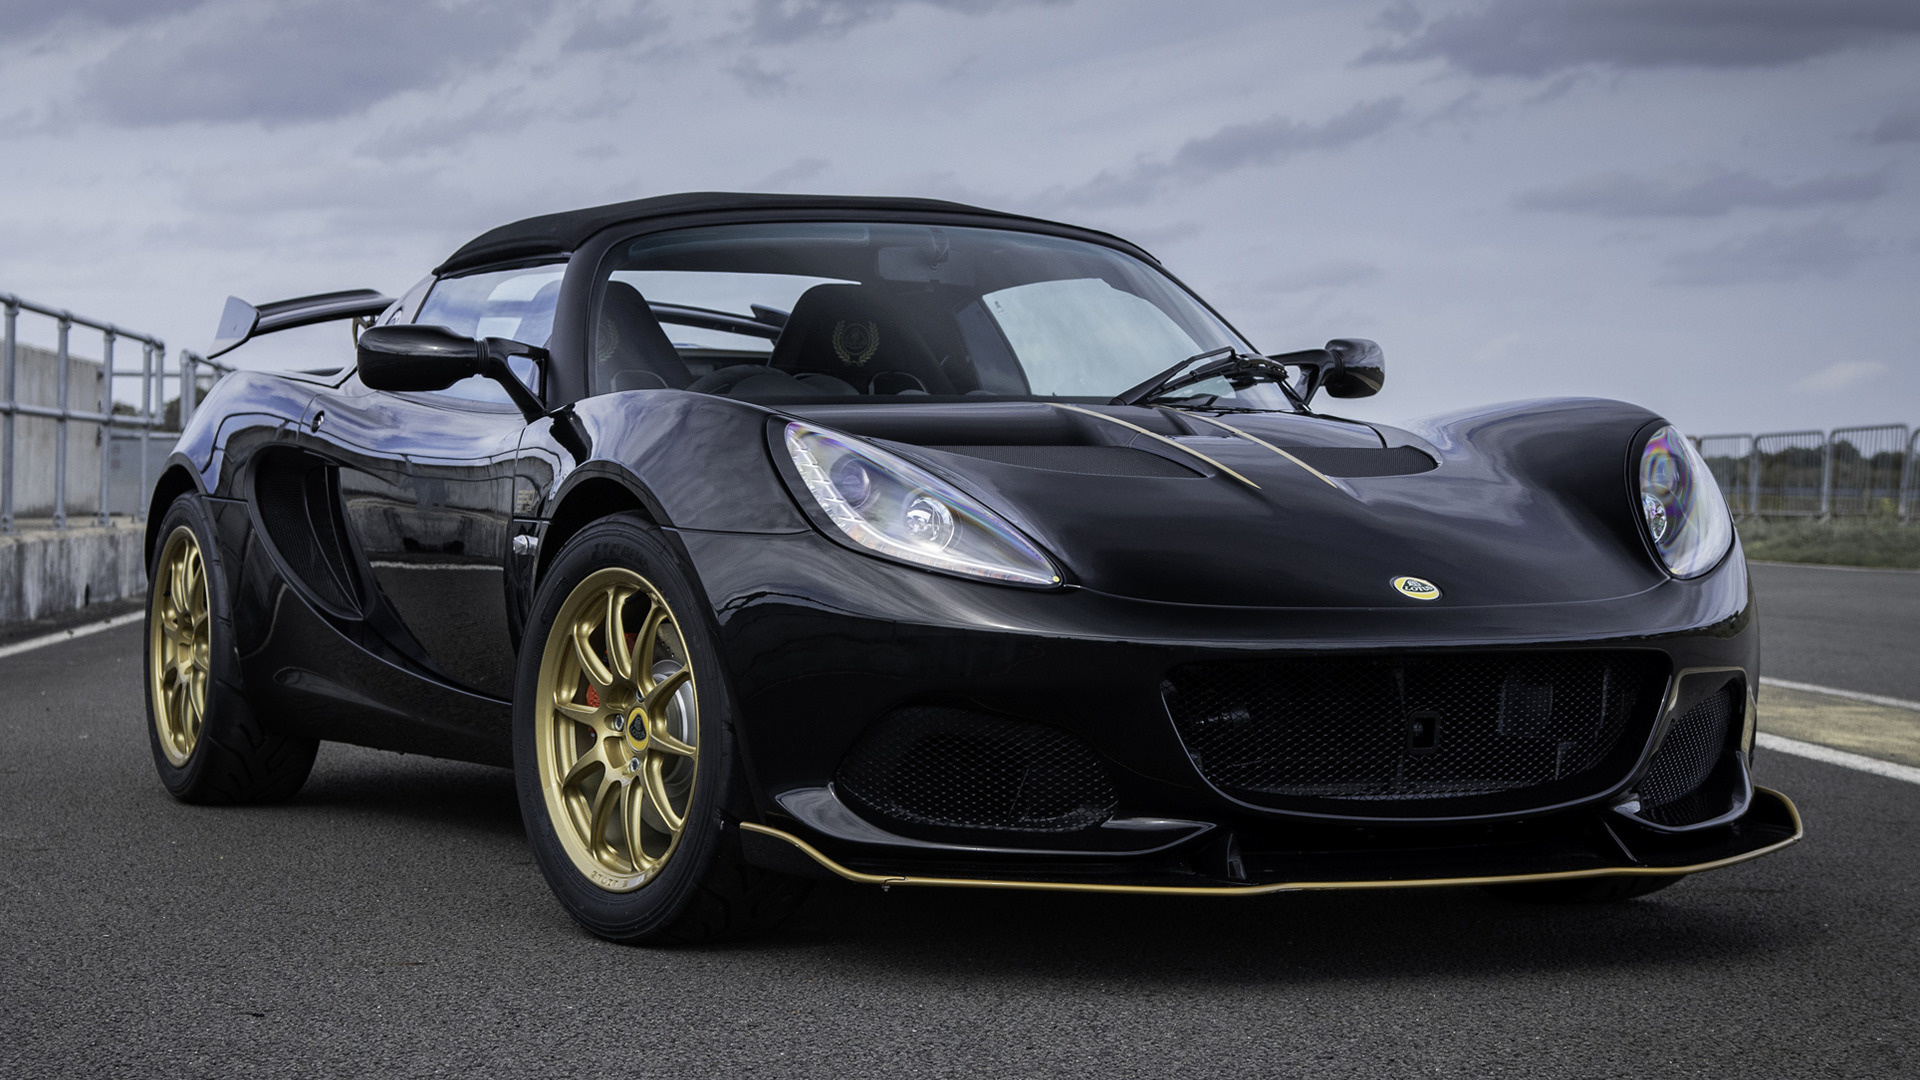 2018 lotus elise cup 250 gp edition jp wallpapers and. Black Bedroom Furniture Sets. Home Design Ideas